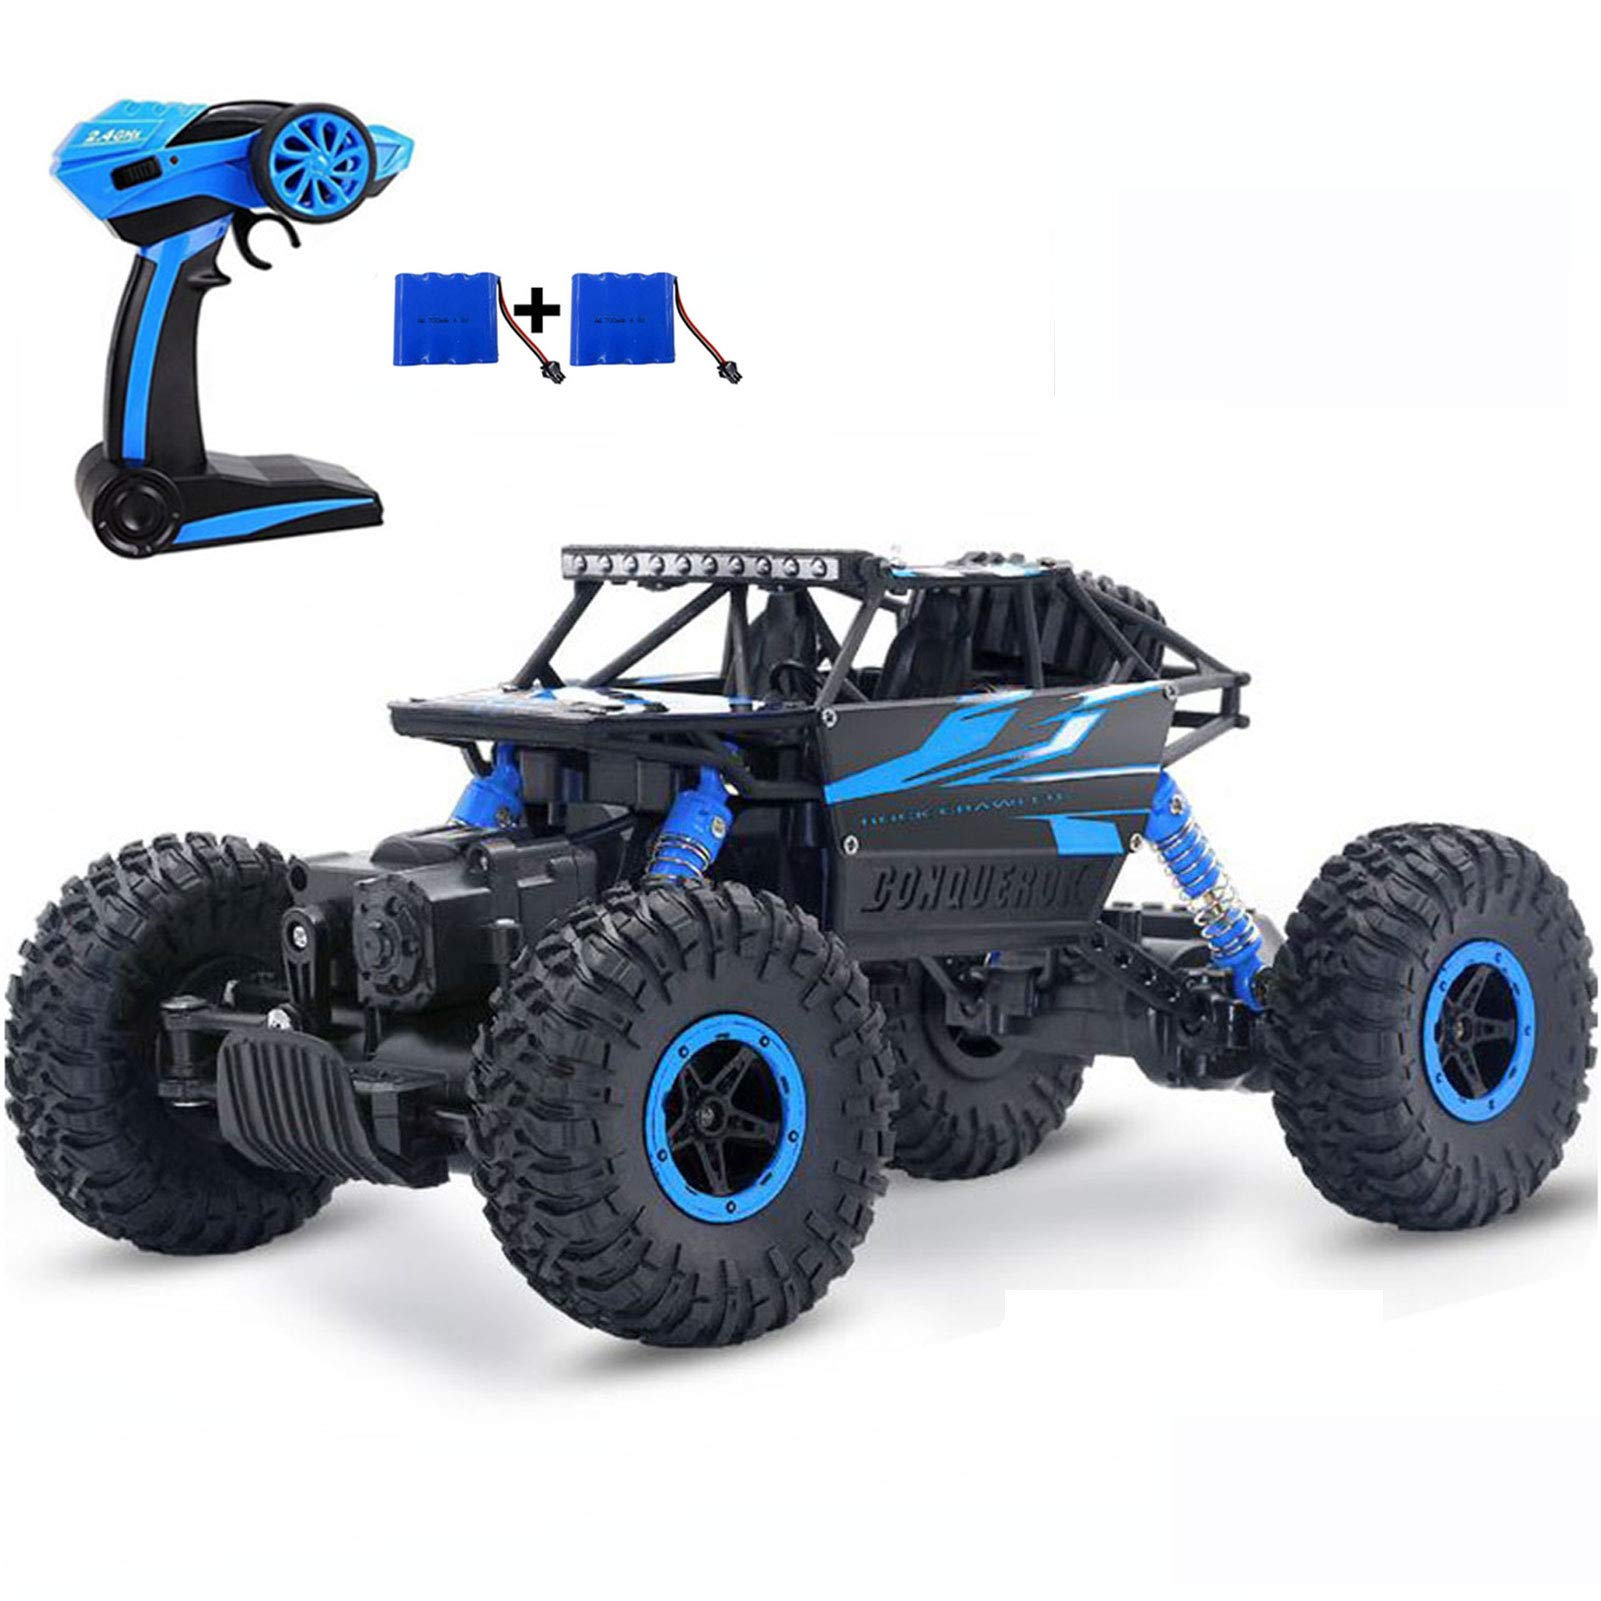 Szjjx Rc Cars Off Road Remote Control Car Trucks Vehicle 2 4ghz 4wd Powerful 1 18 Racing Climbing Cars Radio Electric Rock Crawler Buggy Hobby Toy For Kids Gift Blue Amazon Com Au Toys Games